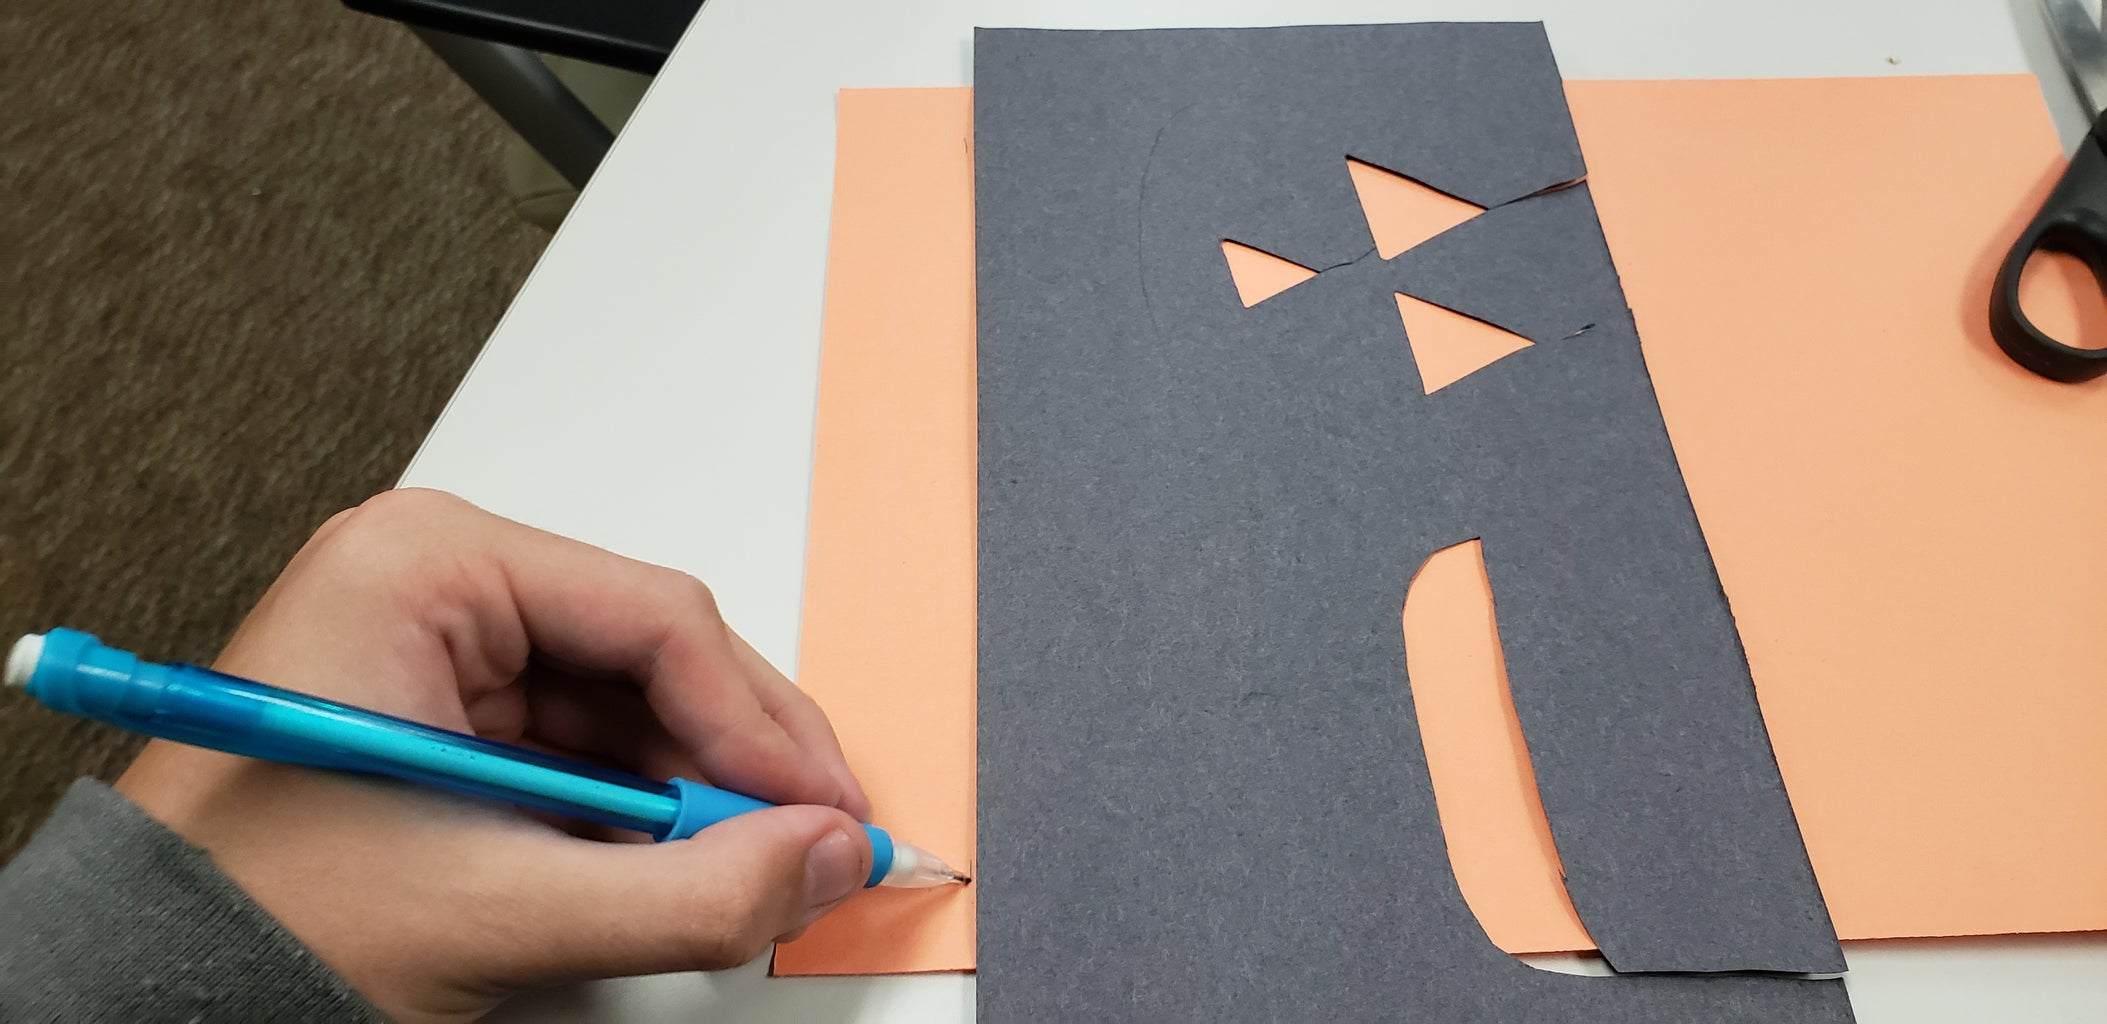 Step 1: Make Guidelines for Cutting